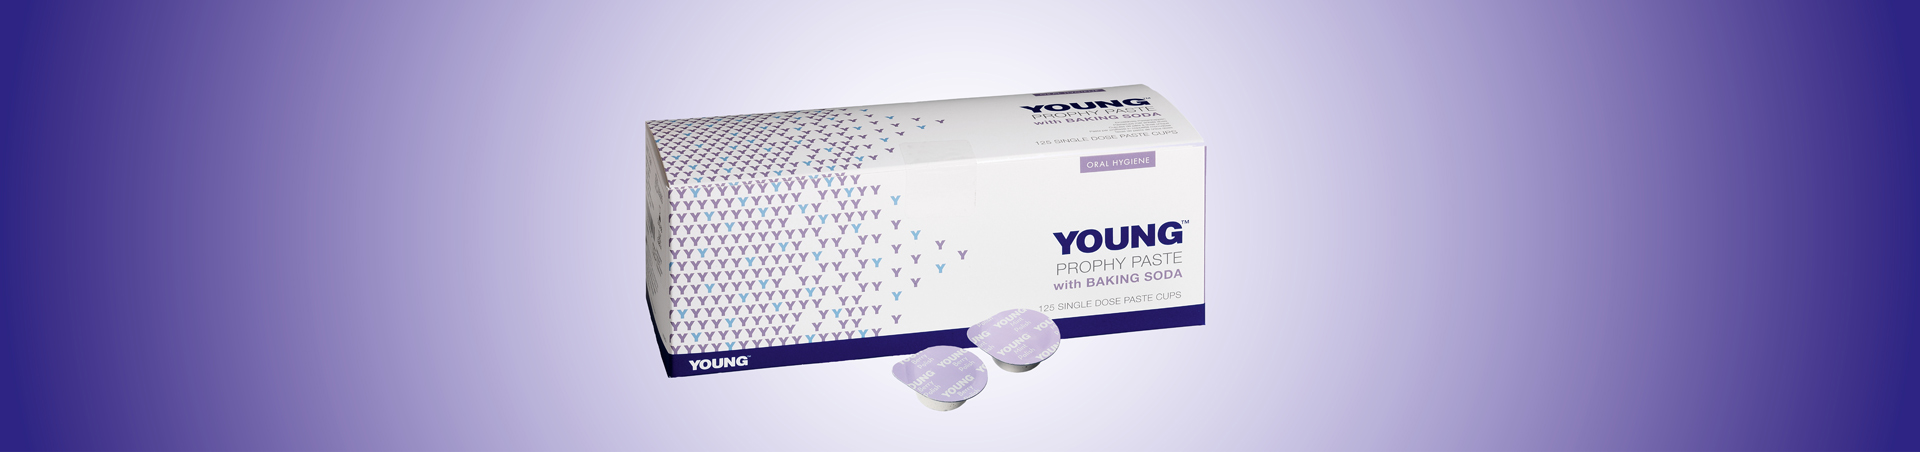 YIE_young_paste_webslider_1920_452_final